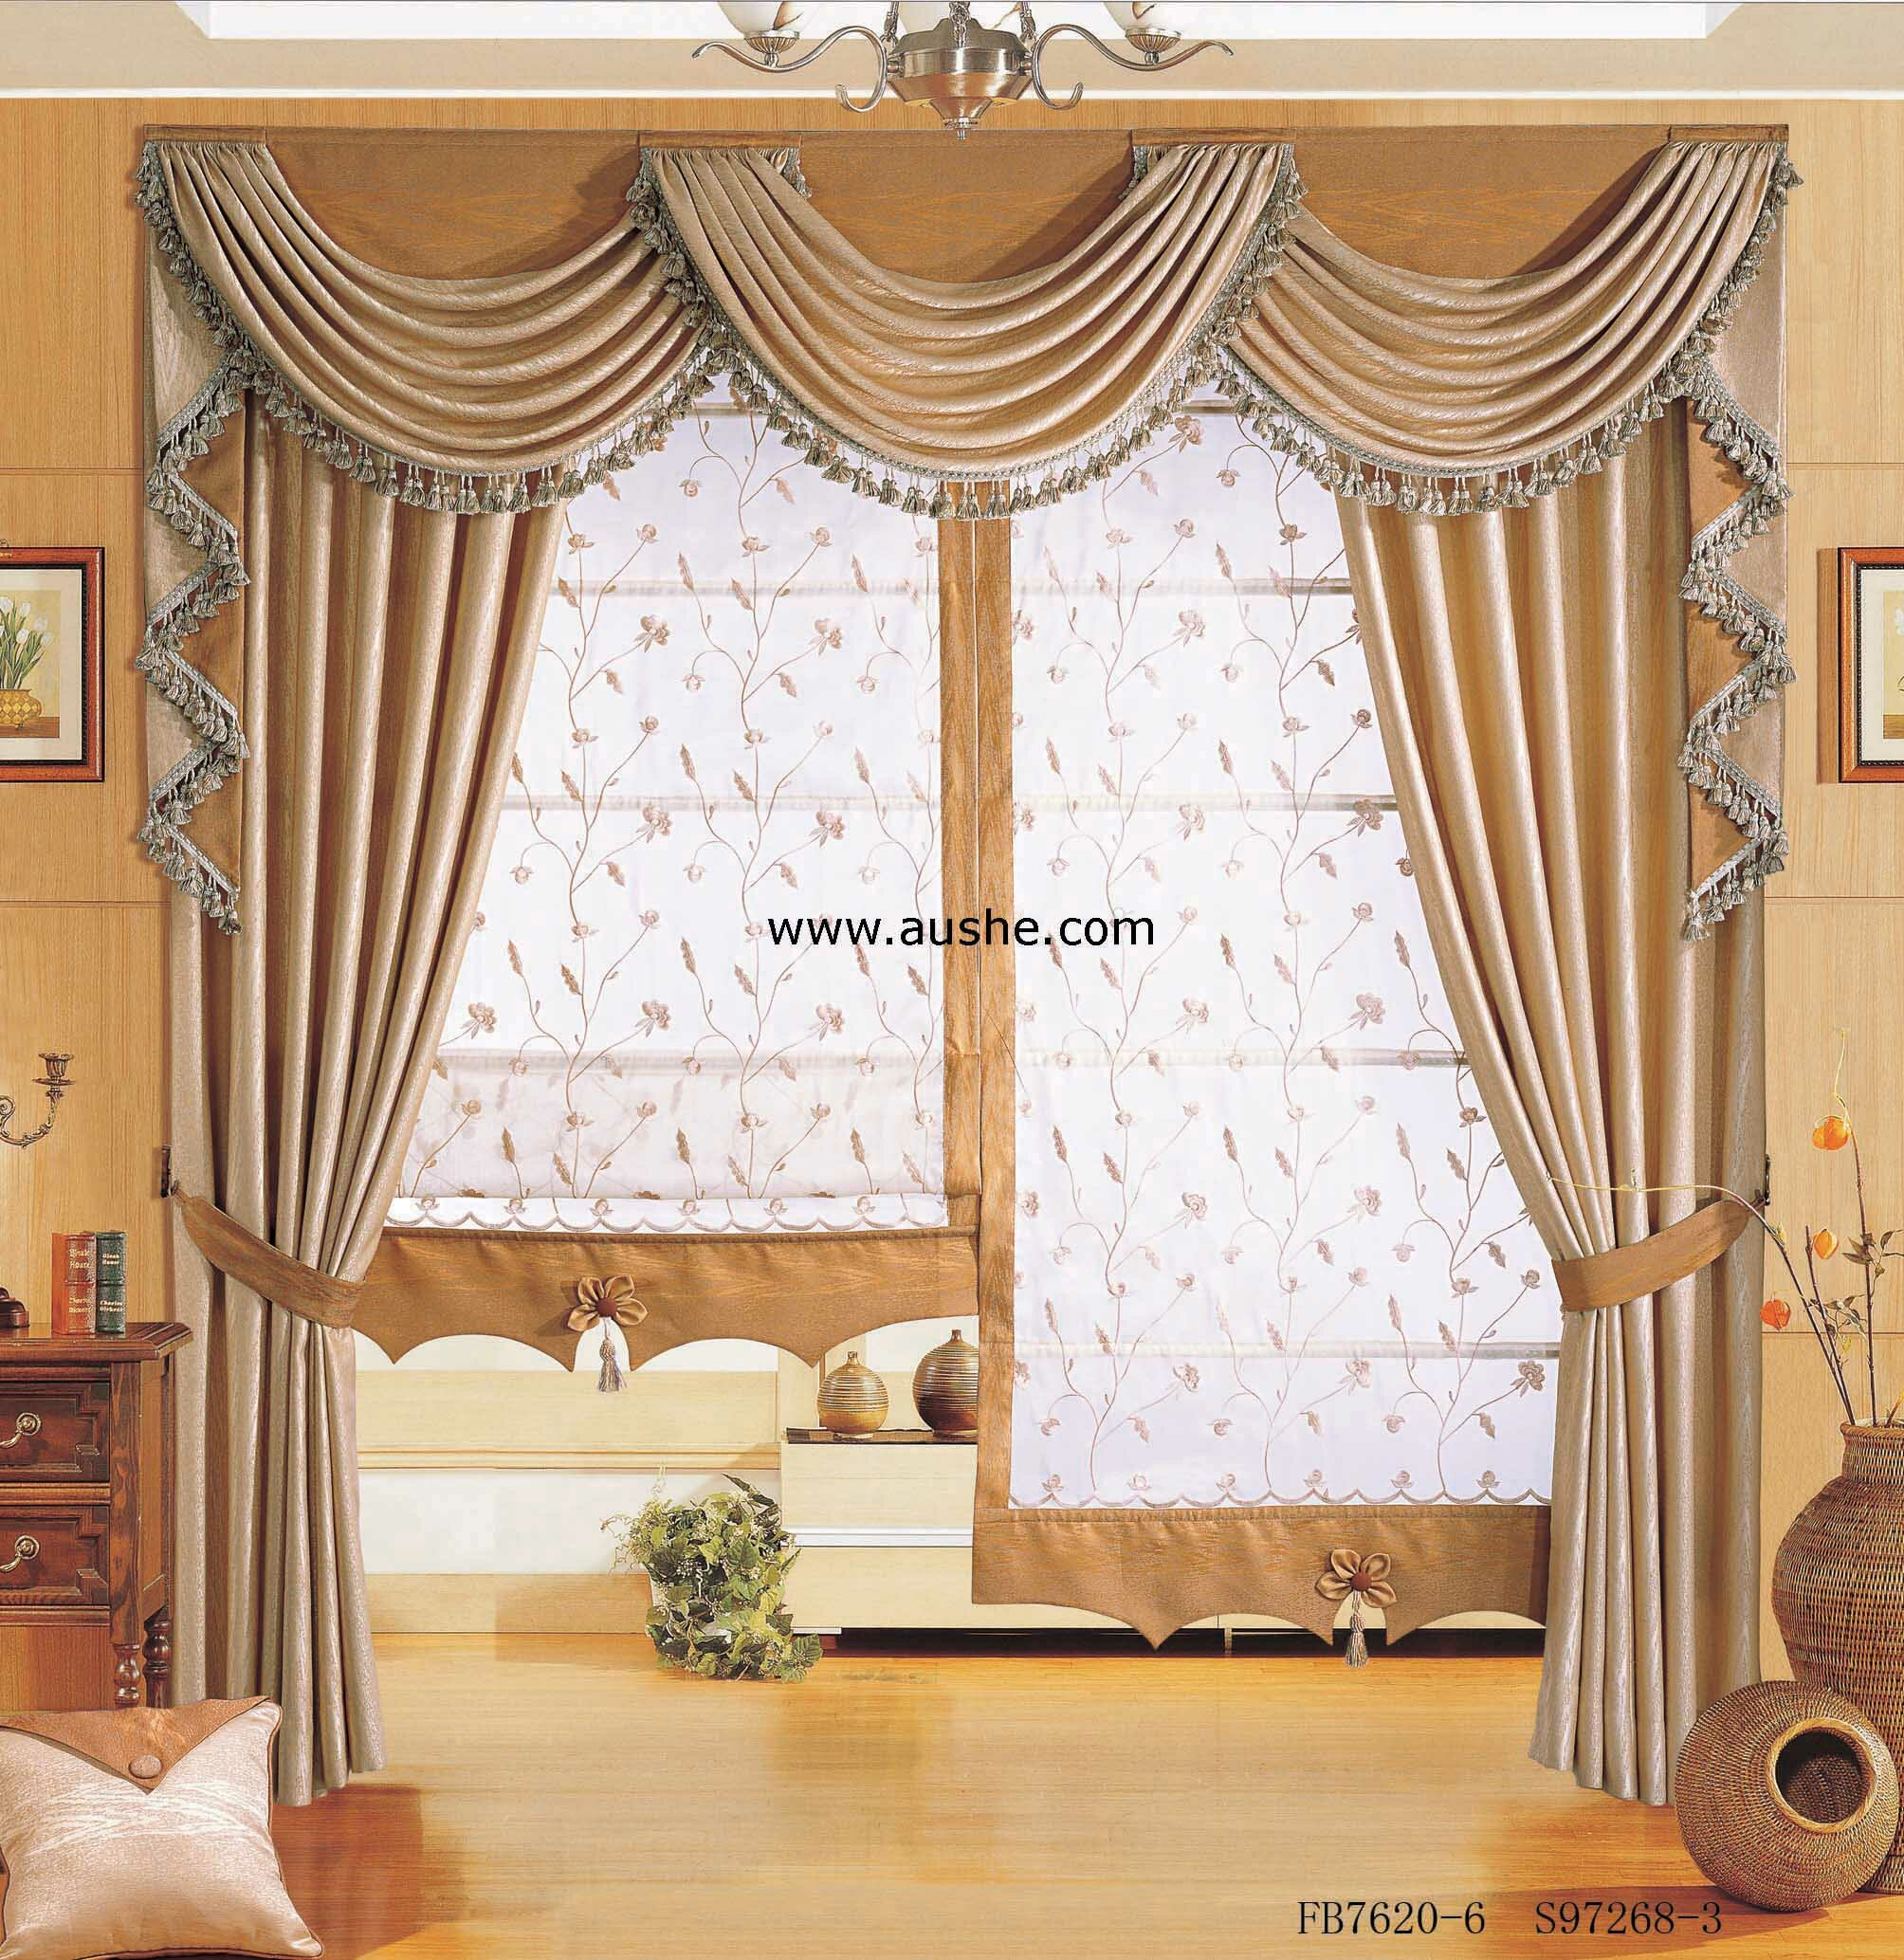 Window Treatments with Valances | Living Room Valances | Valance for Windows Curtains